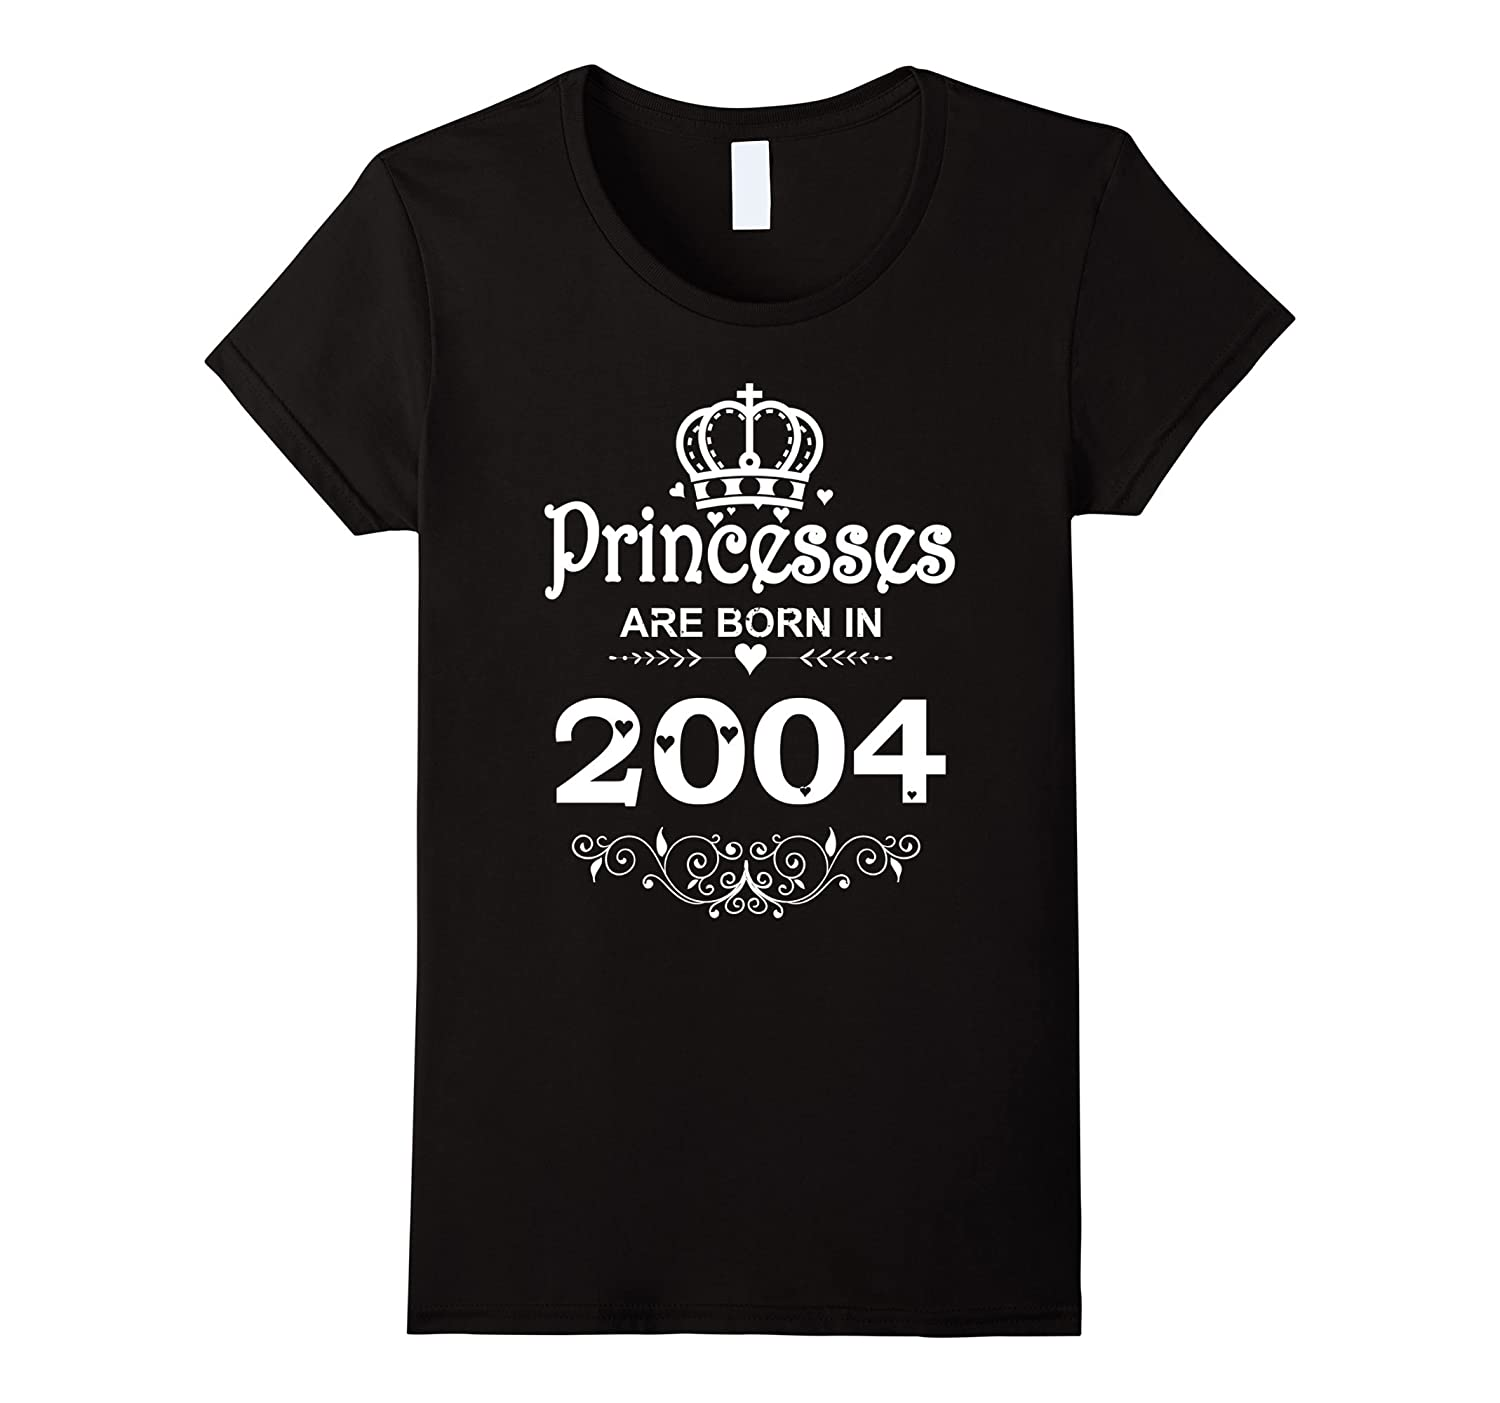 Princesses Are Born In 2004 T-shirt 13th Birthday Gift Girl